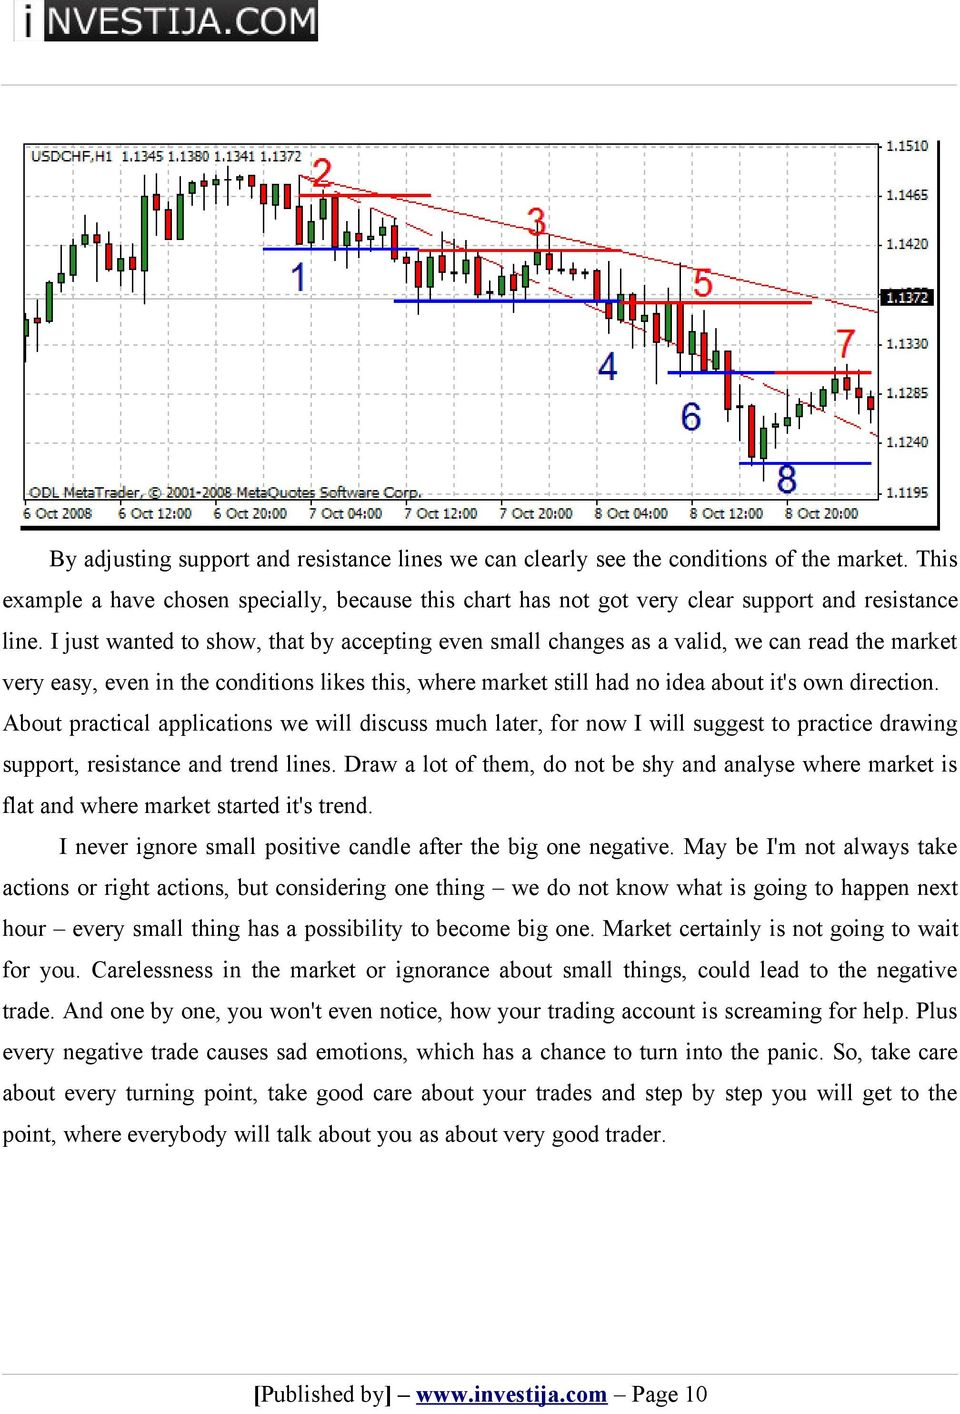 About practical applications we will discuss much later, for now I will suggest to practice drawing support, resistance and trend lines.